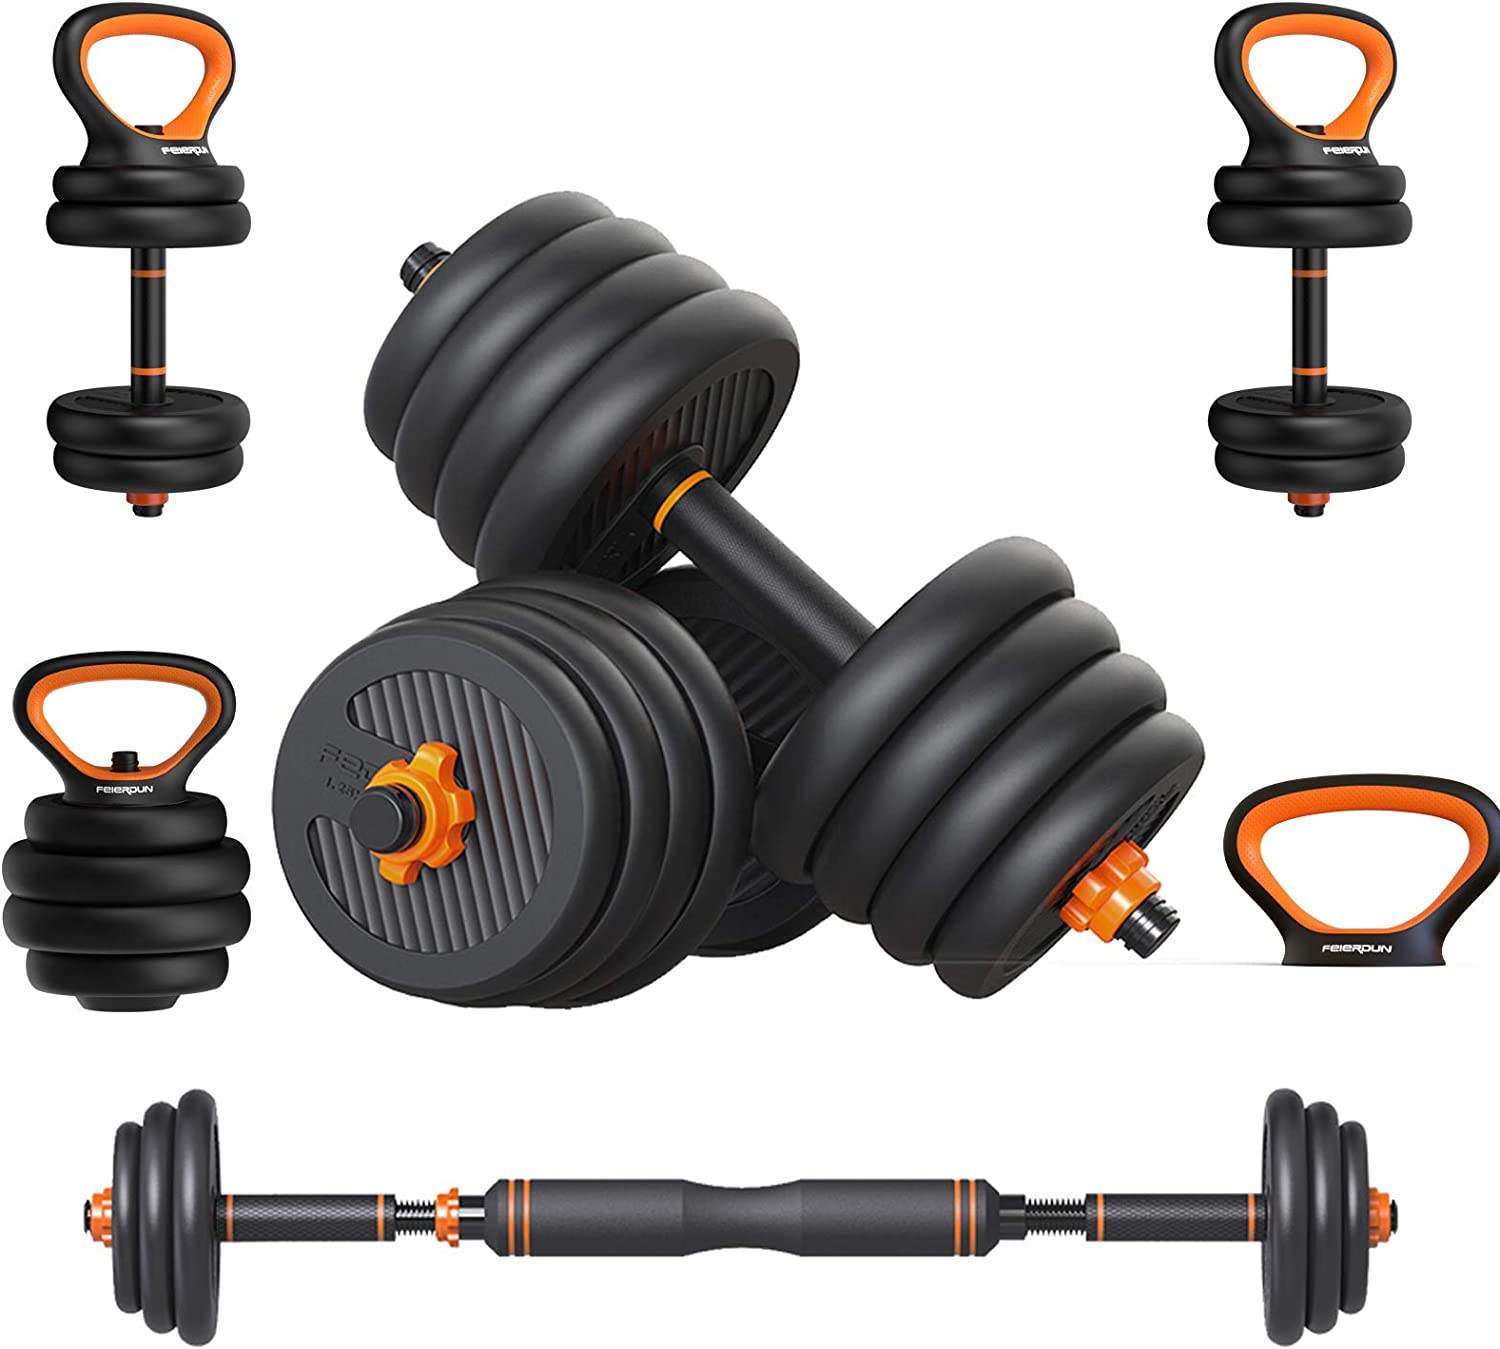 Adjustable Dumbbells Weights Dumbbells Set,66 Lbs Barbell Weight Set with Connecting Rod - for Home Gym, Workout, Whole Body Training, 4 IN 1/Dumbbells Set - Dumbbells,Kettlebells,Push Ups,Barbells